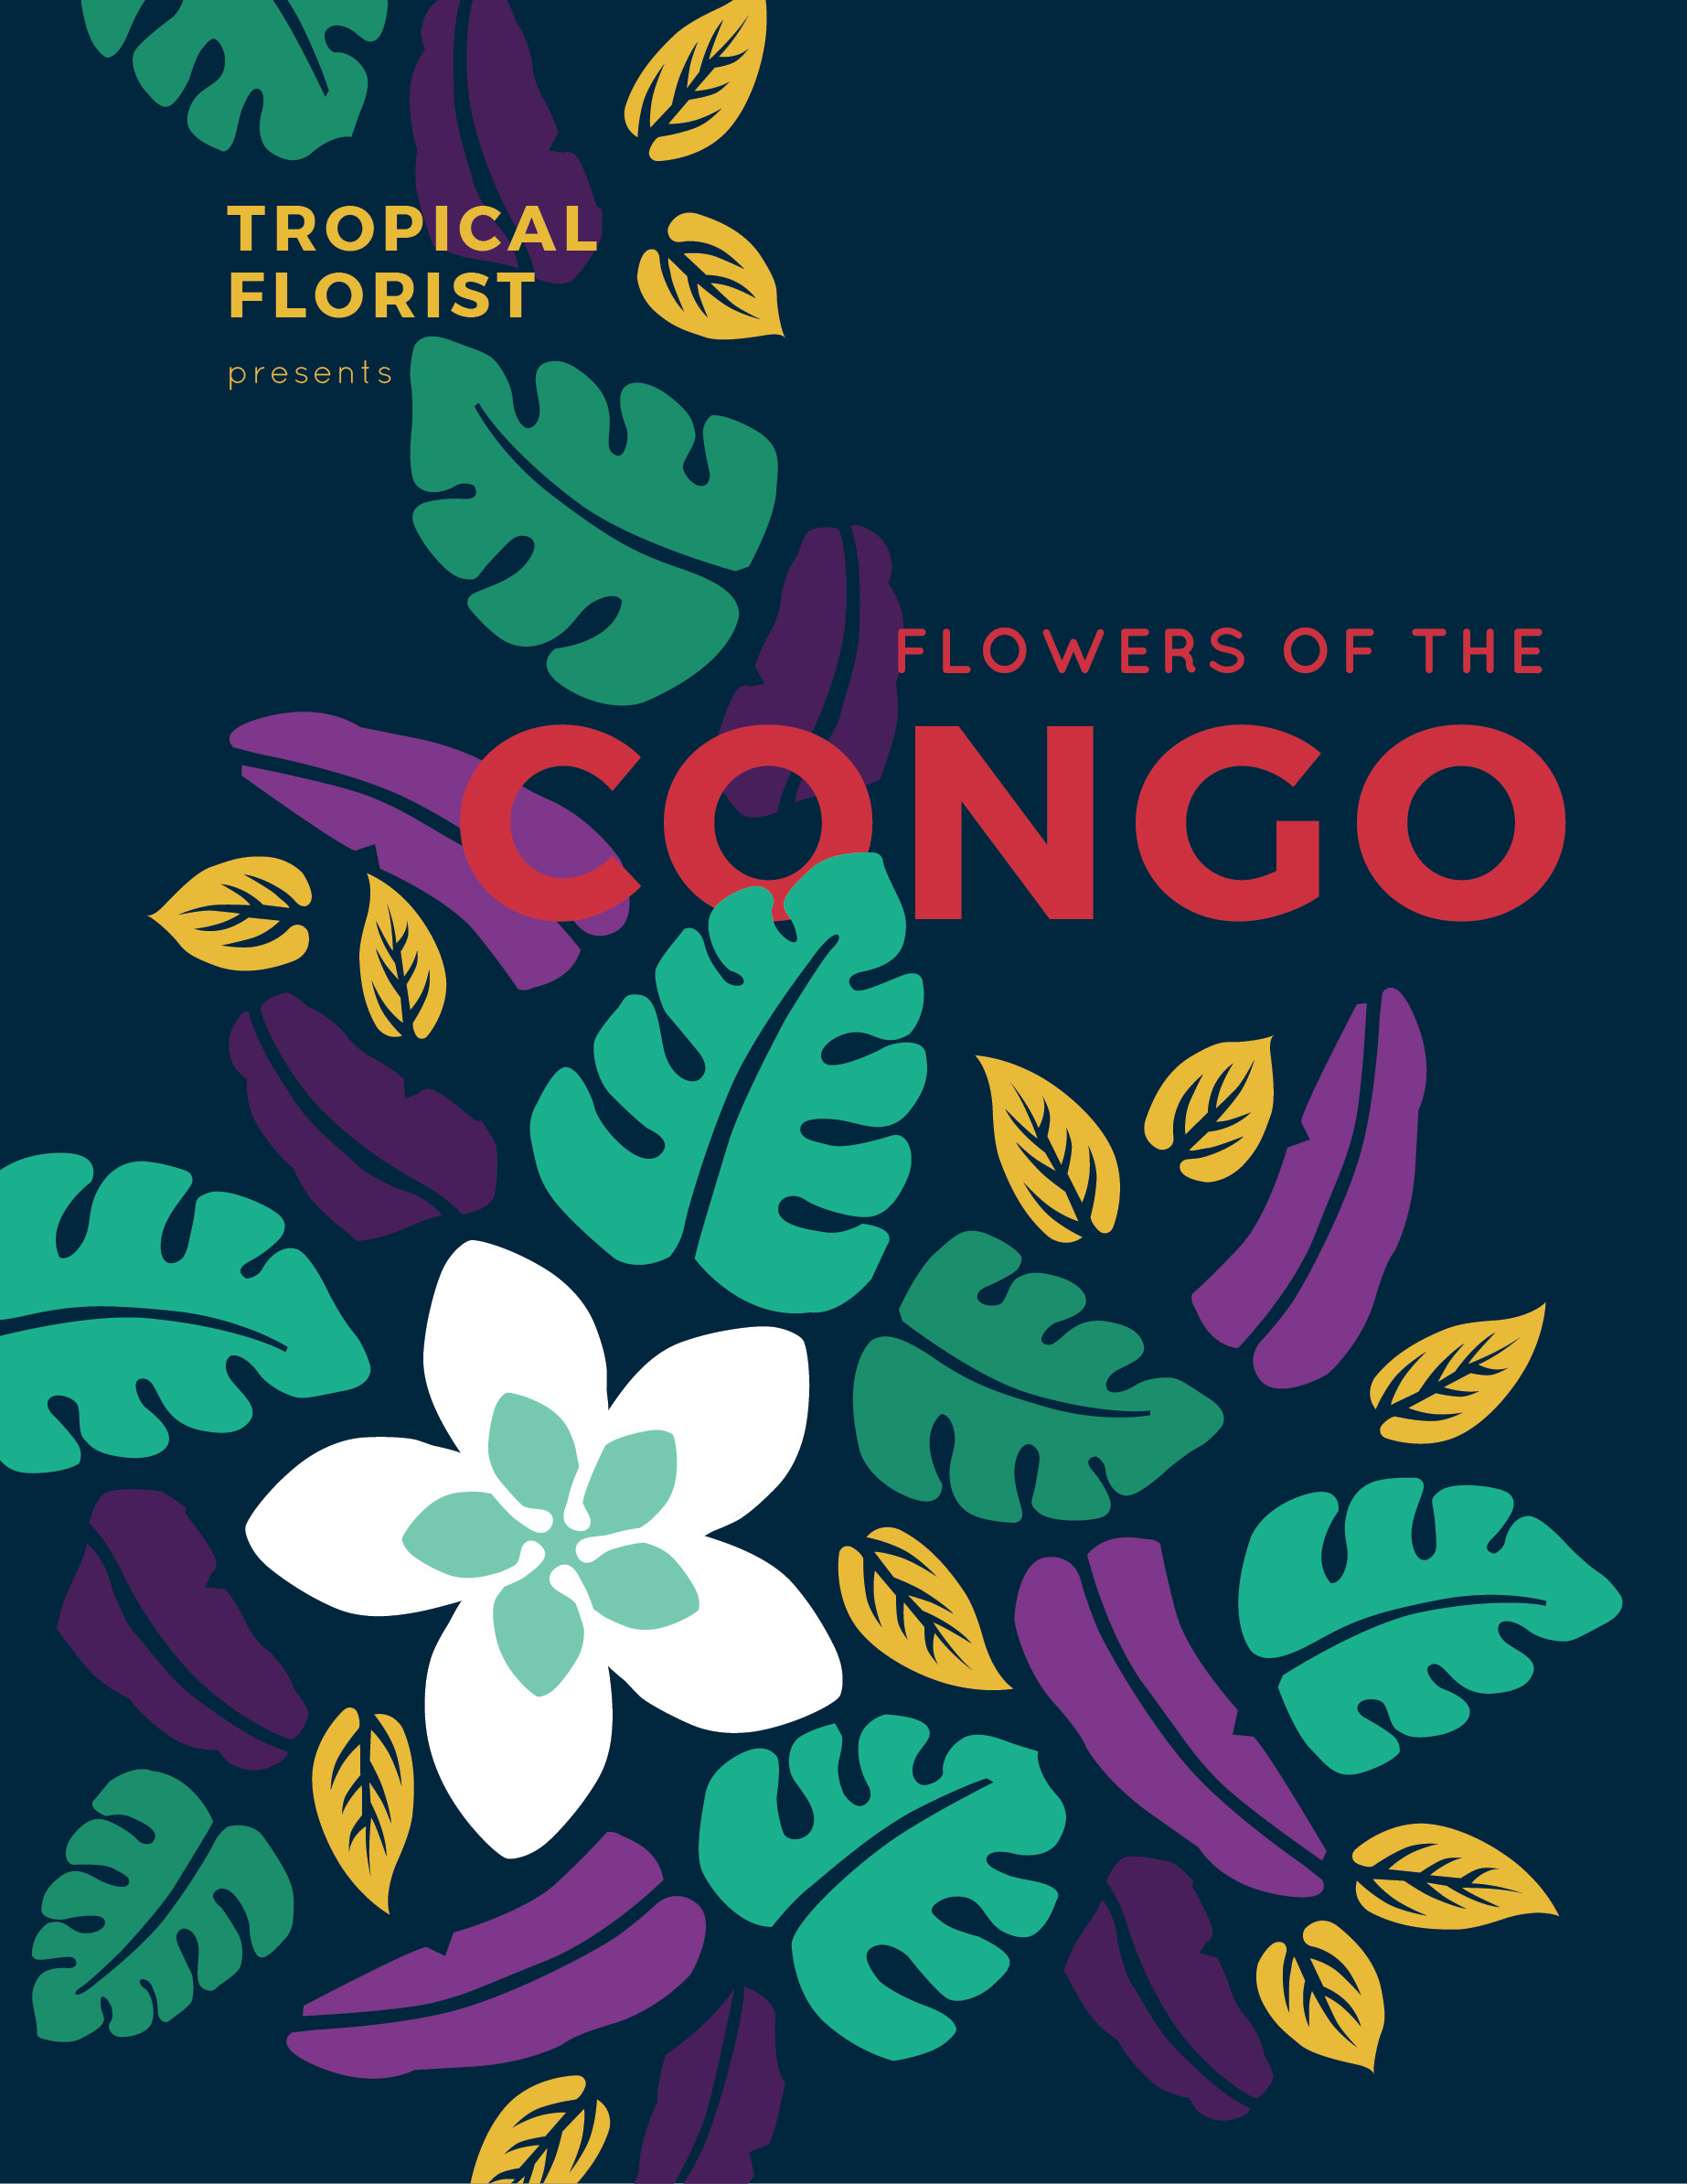 The final poster I landed on emphasizes the Plumeria as the icon of the brand and emotes the deep, mysterious, and beautiful foliage of the tropics.